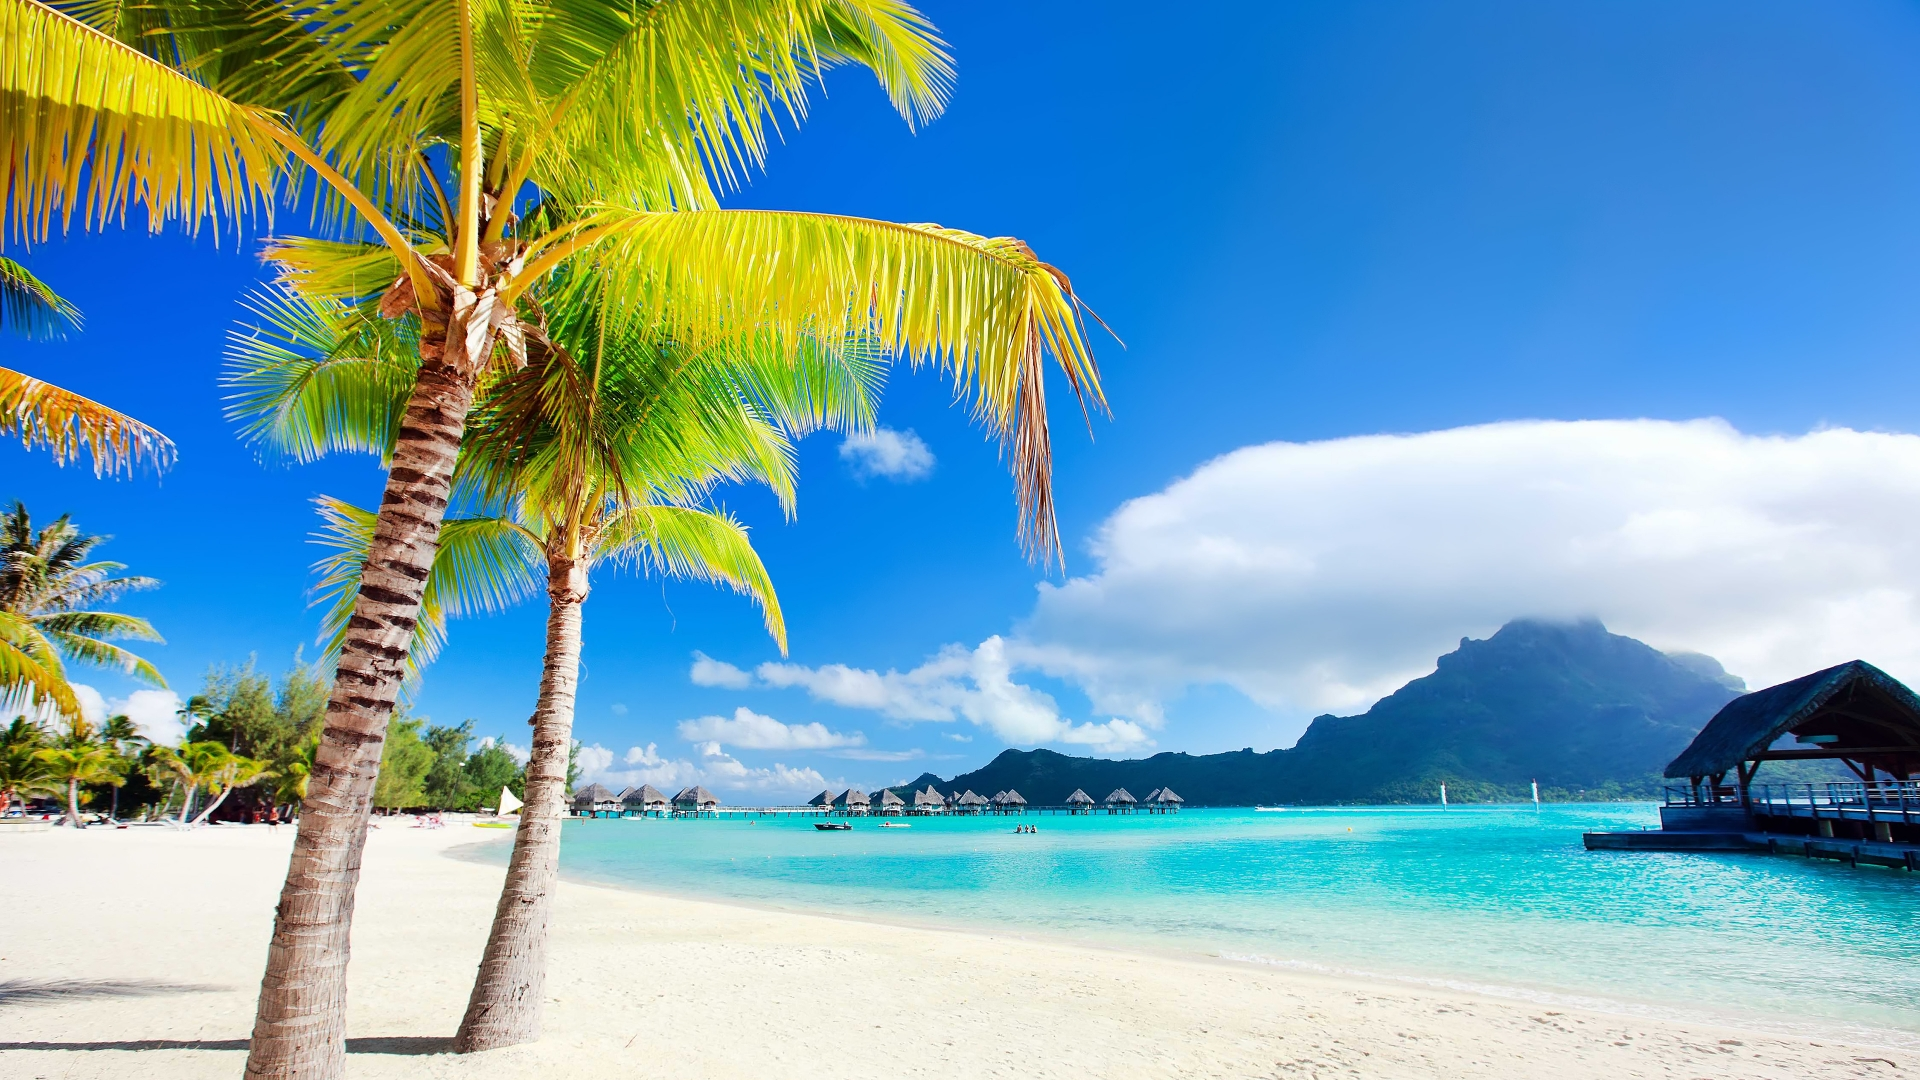 Bora Bora Island High Definition Wallpaper   Travel HD Wallpapers 1920x1080